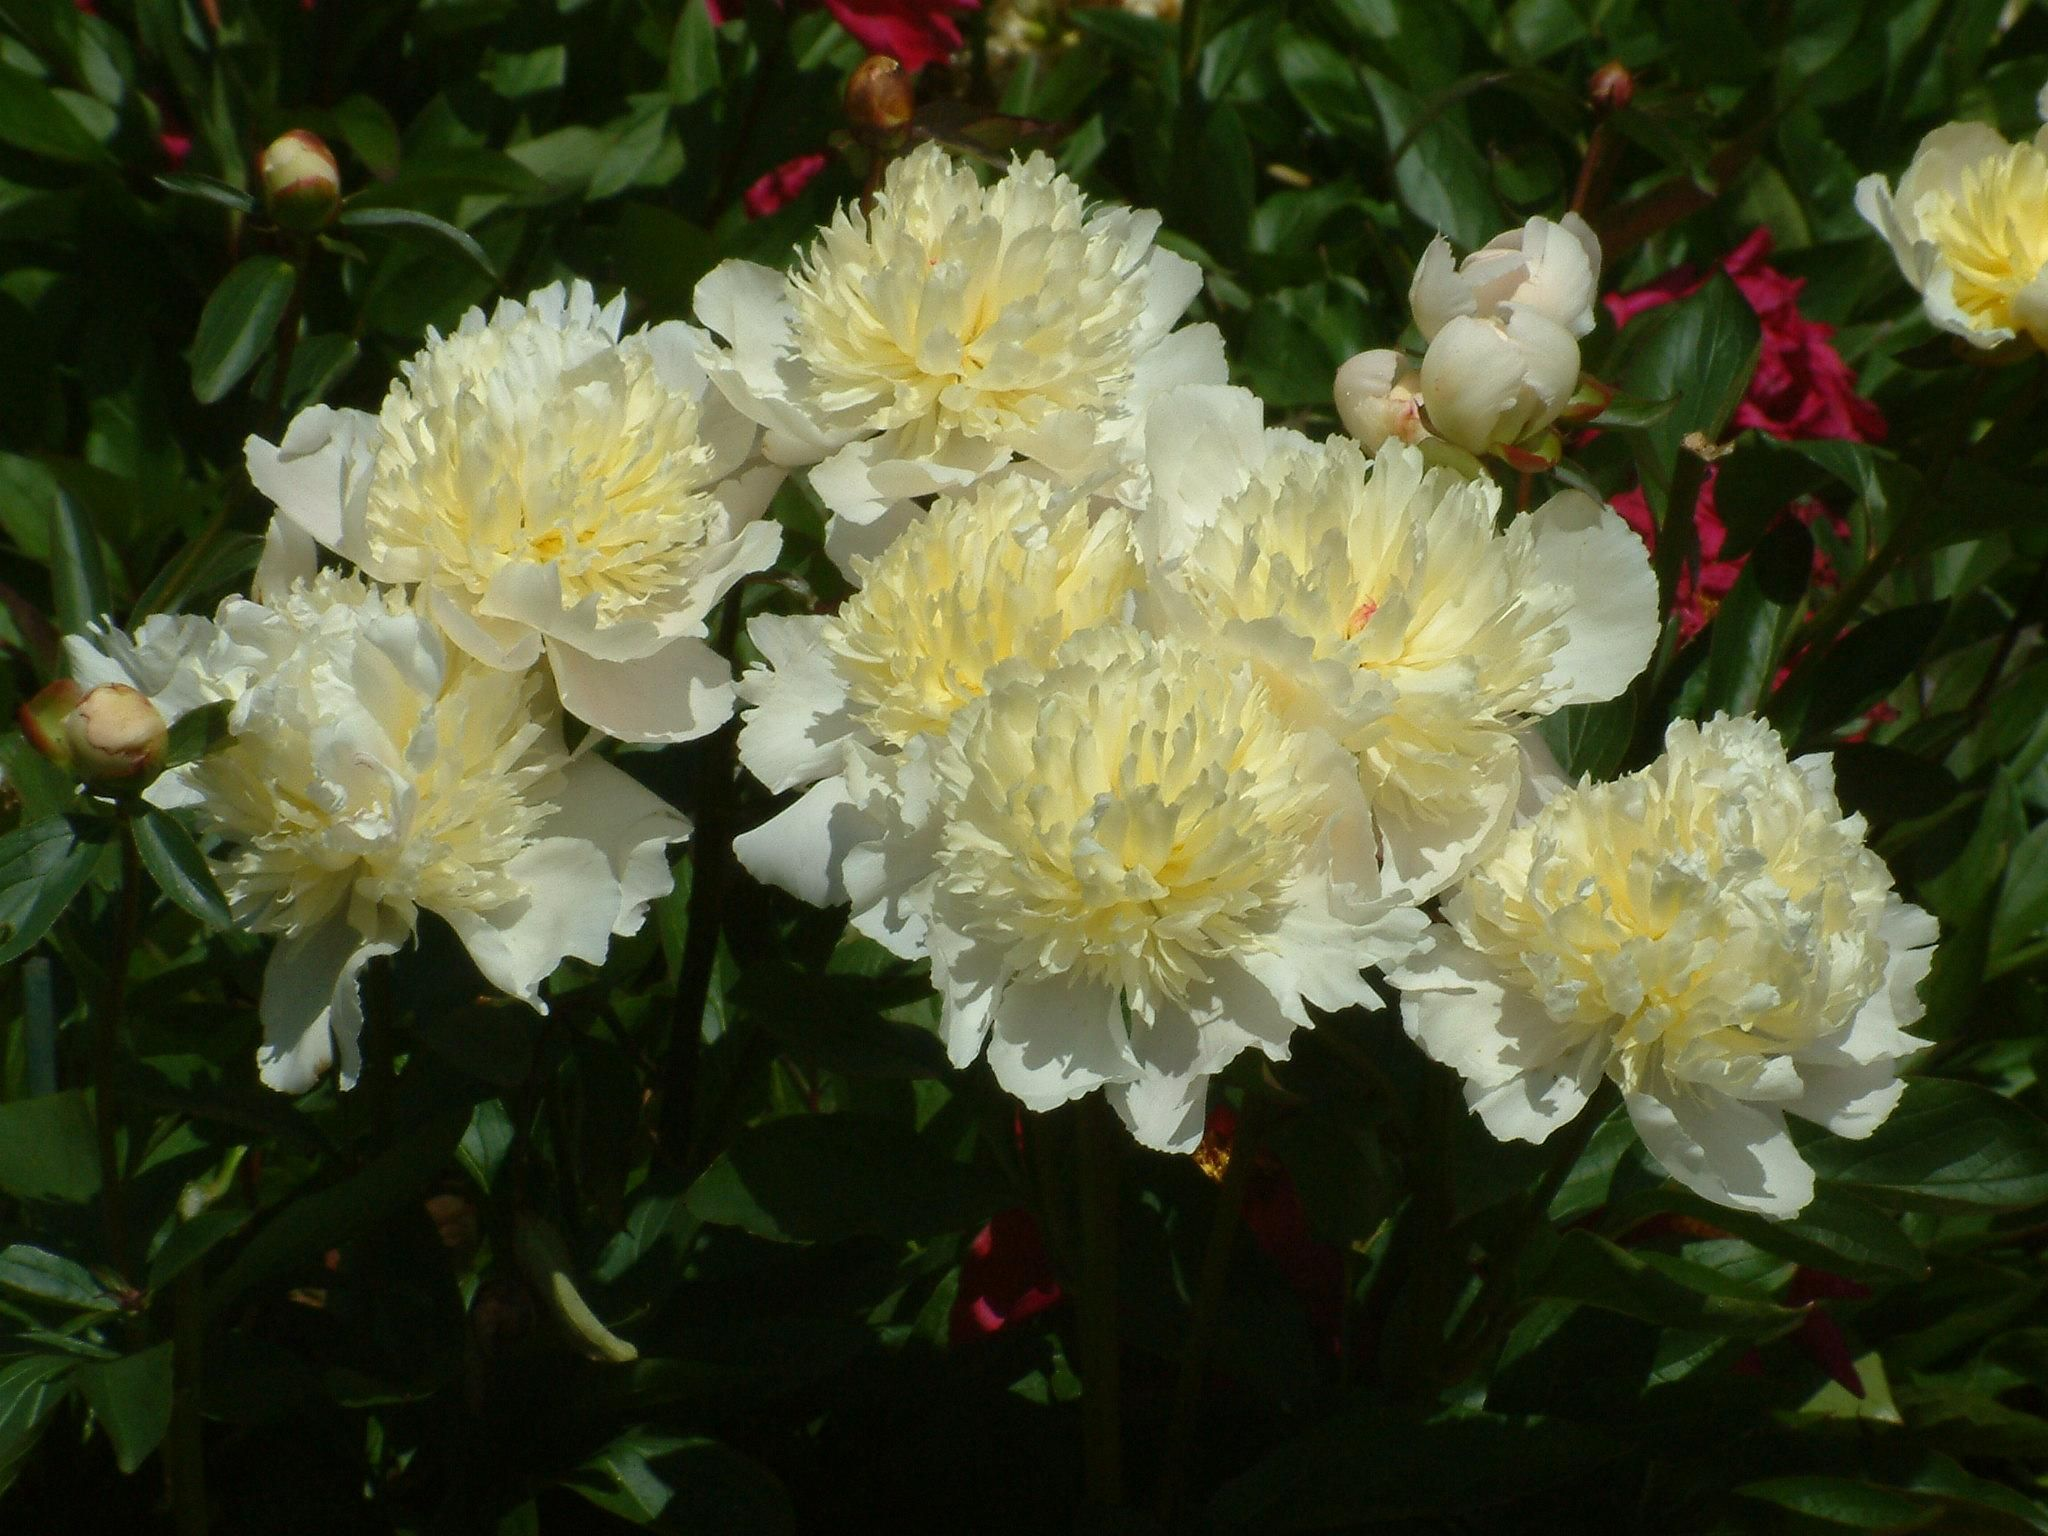 Paeonia 'Laura Dessert', as close to yellow as lots of Paeonias get….